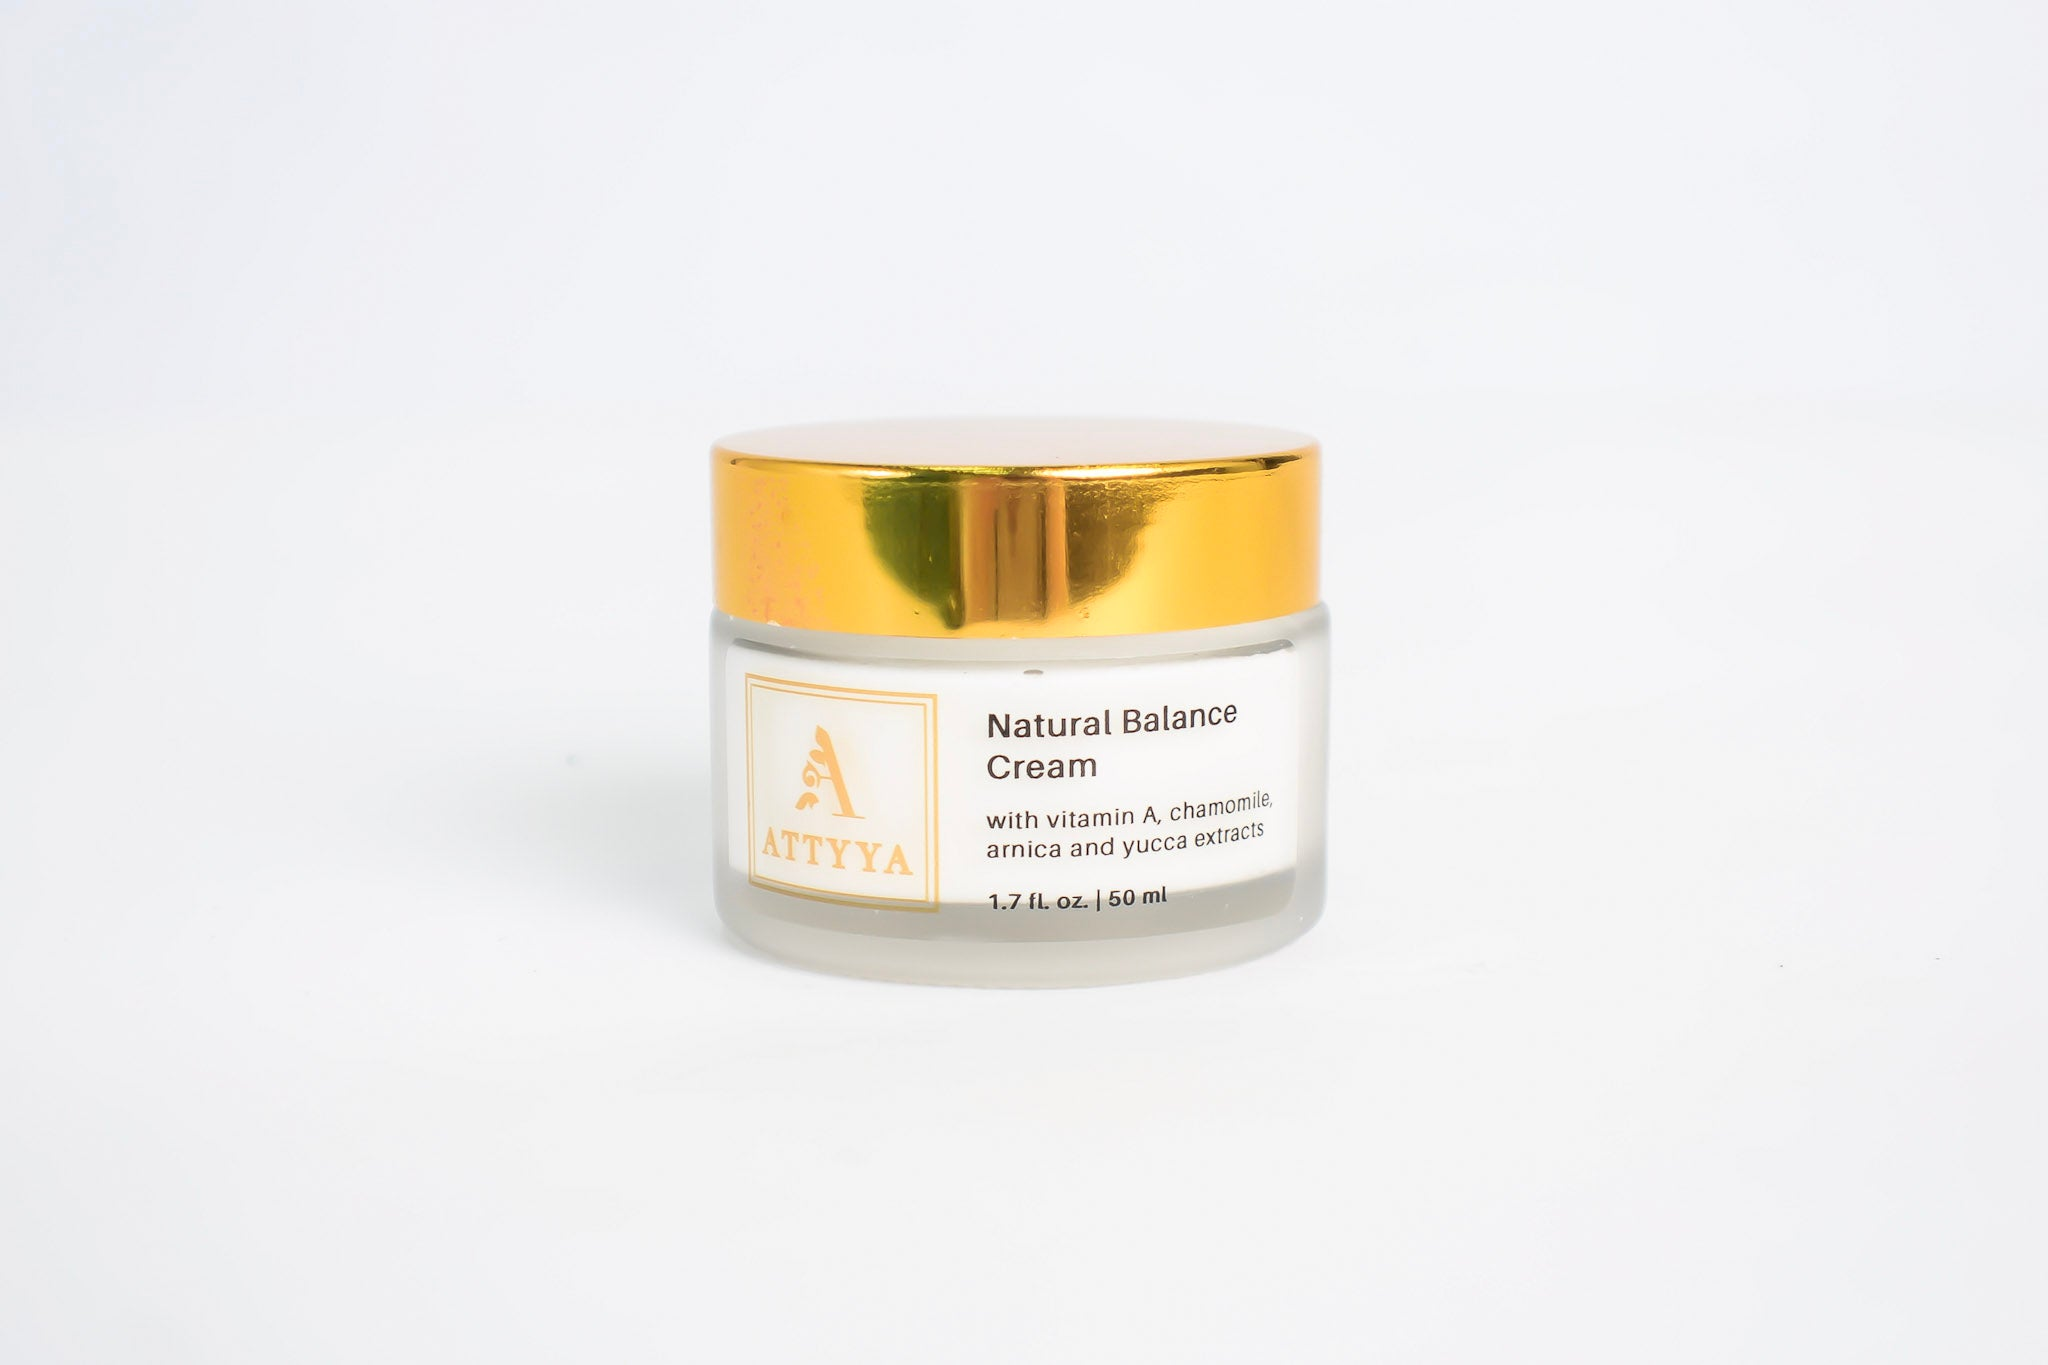 NATURAL BALANCE CREAM WITH VITAMIN A